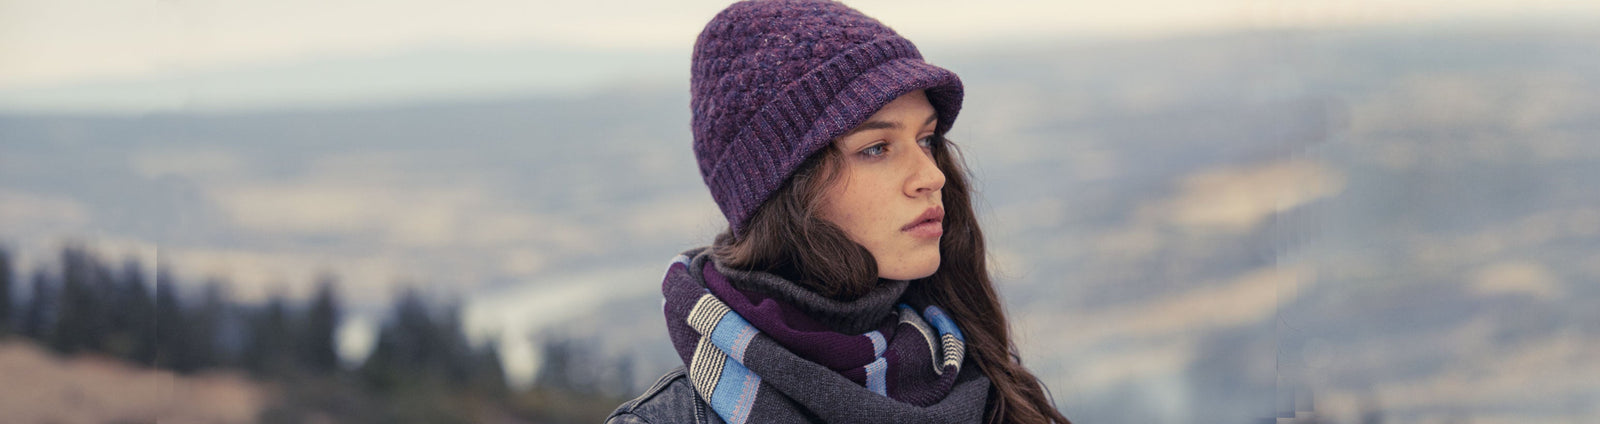 Women's Knit Brim Beanies